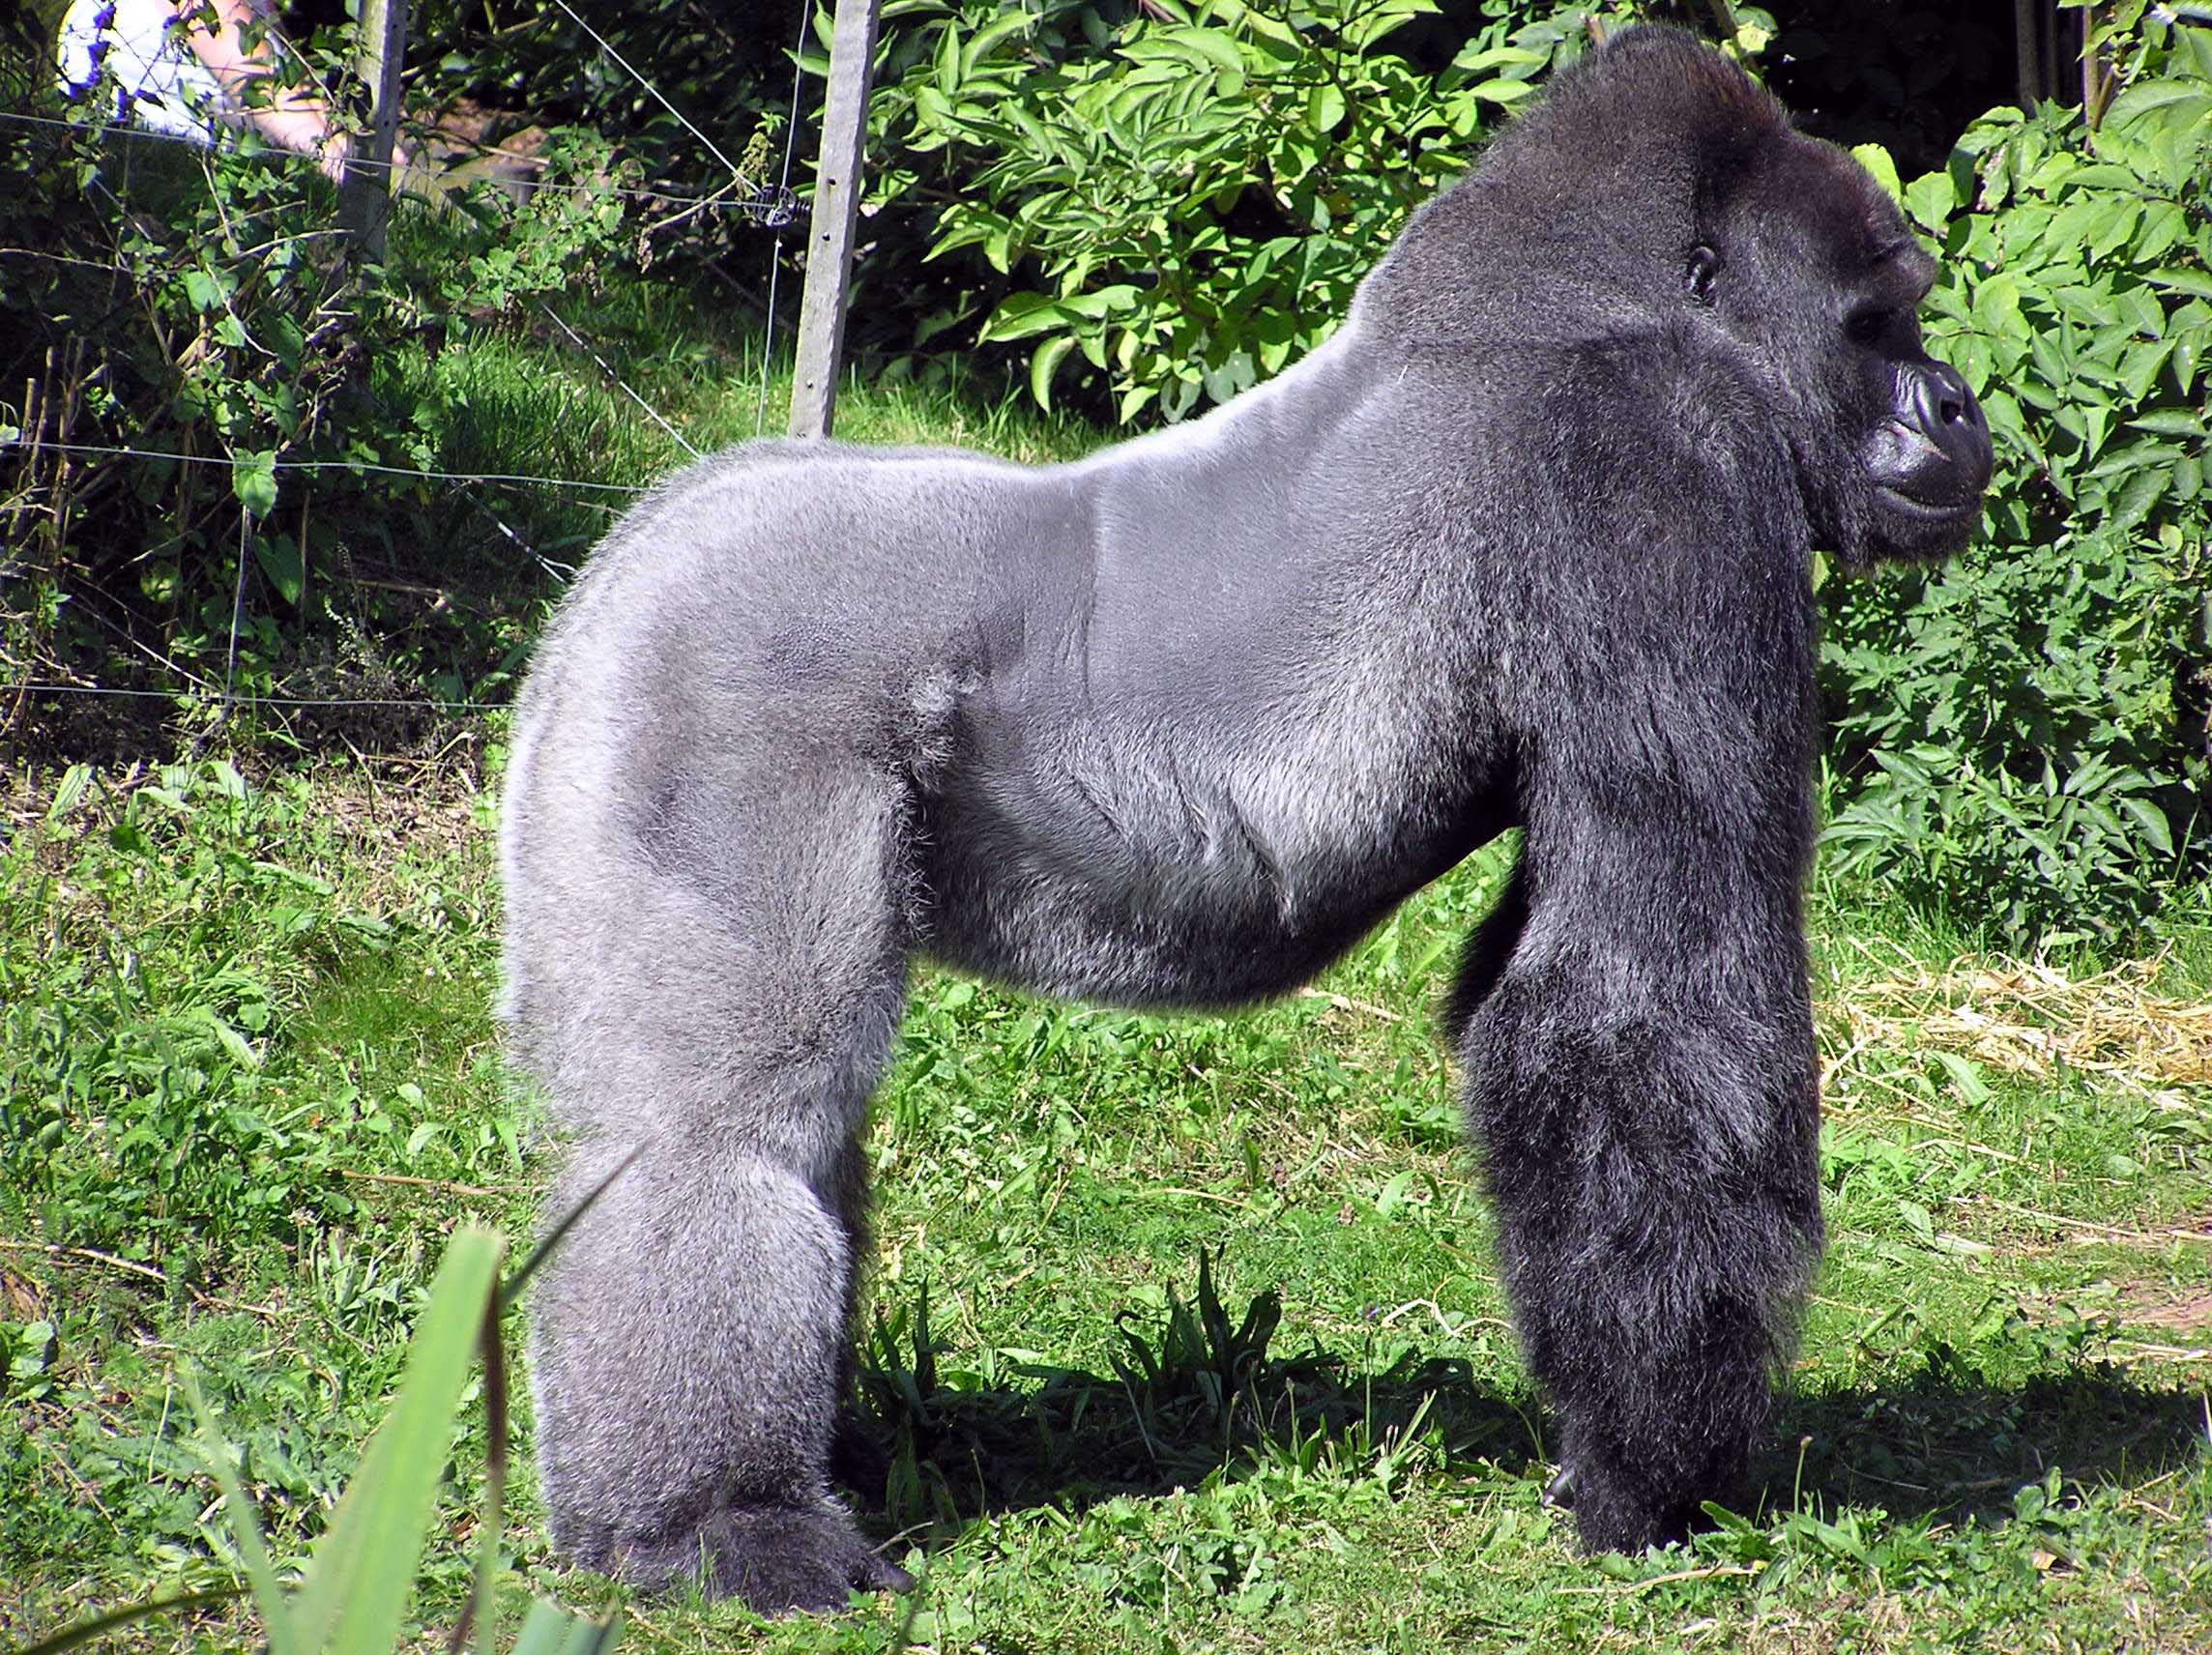 Help save the mountain gorilla